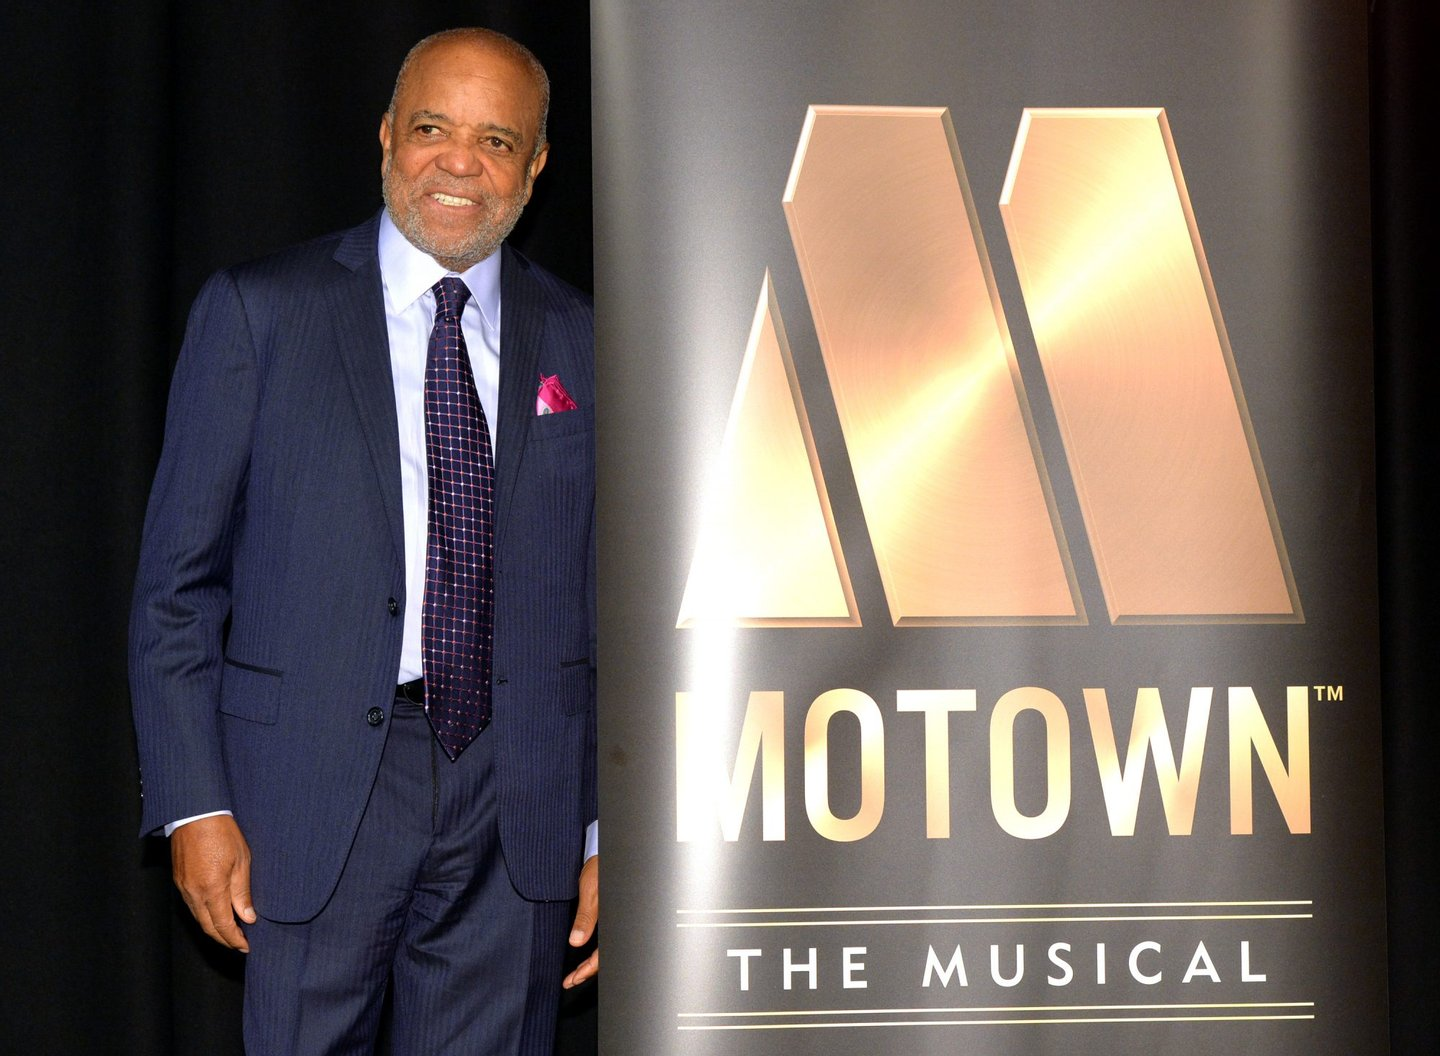 """LONDON, ENGLAND - OCTOBER 05: Berry Gordy attends a photocall for """"Motown - The Musical"""" at The Hospital Club on October 5, 2015 in London, England. (Photo by Anthony Harvey/Getty Images)"""